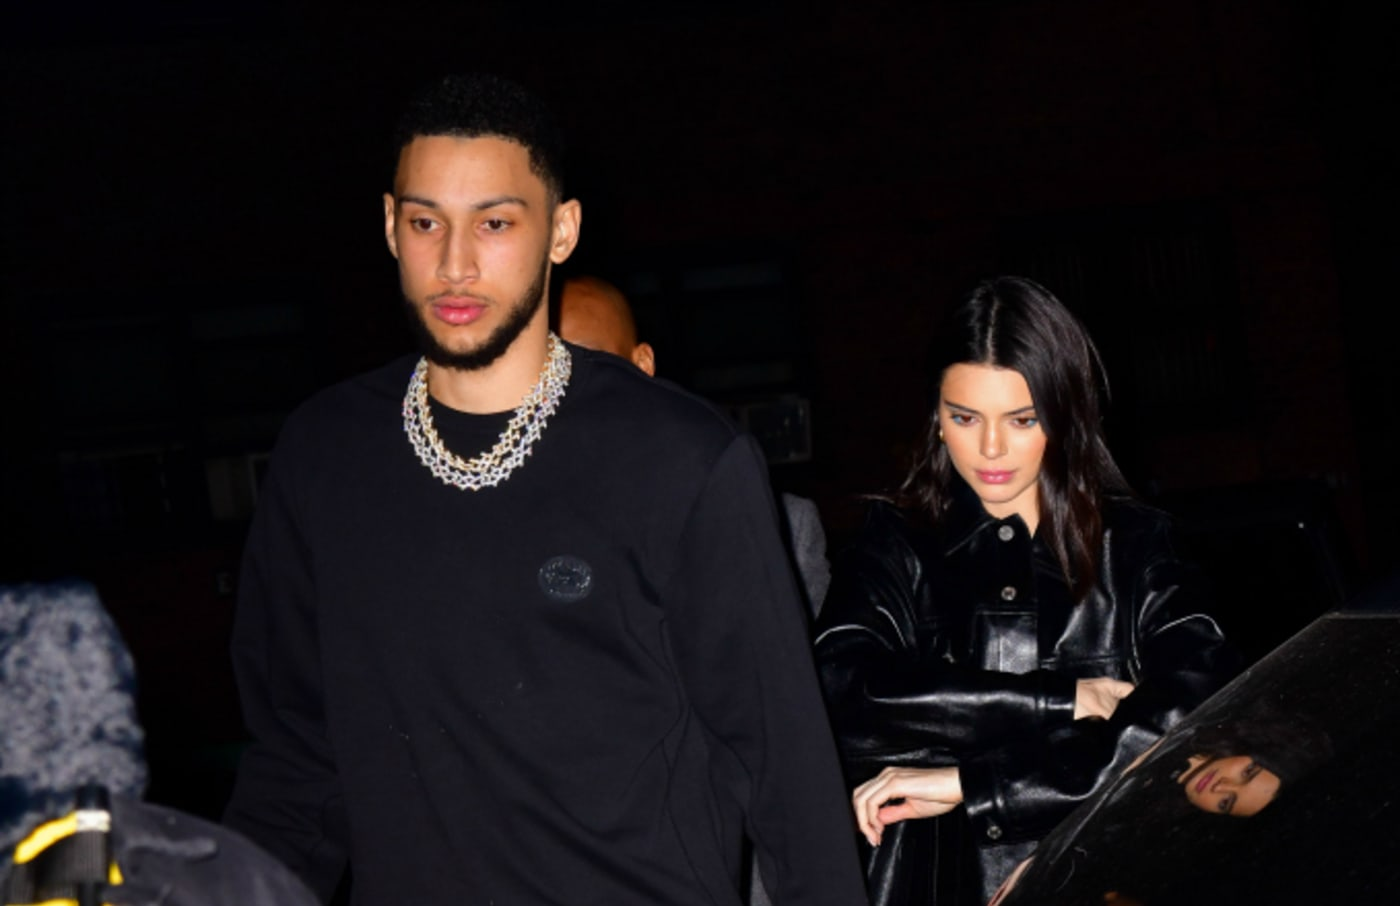 Ben Simmons and Kendall Jenner arrive to Marquee New York